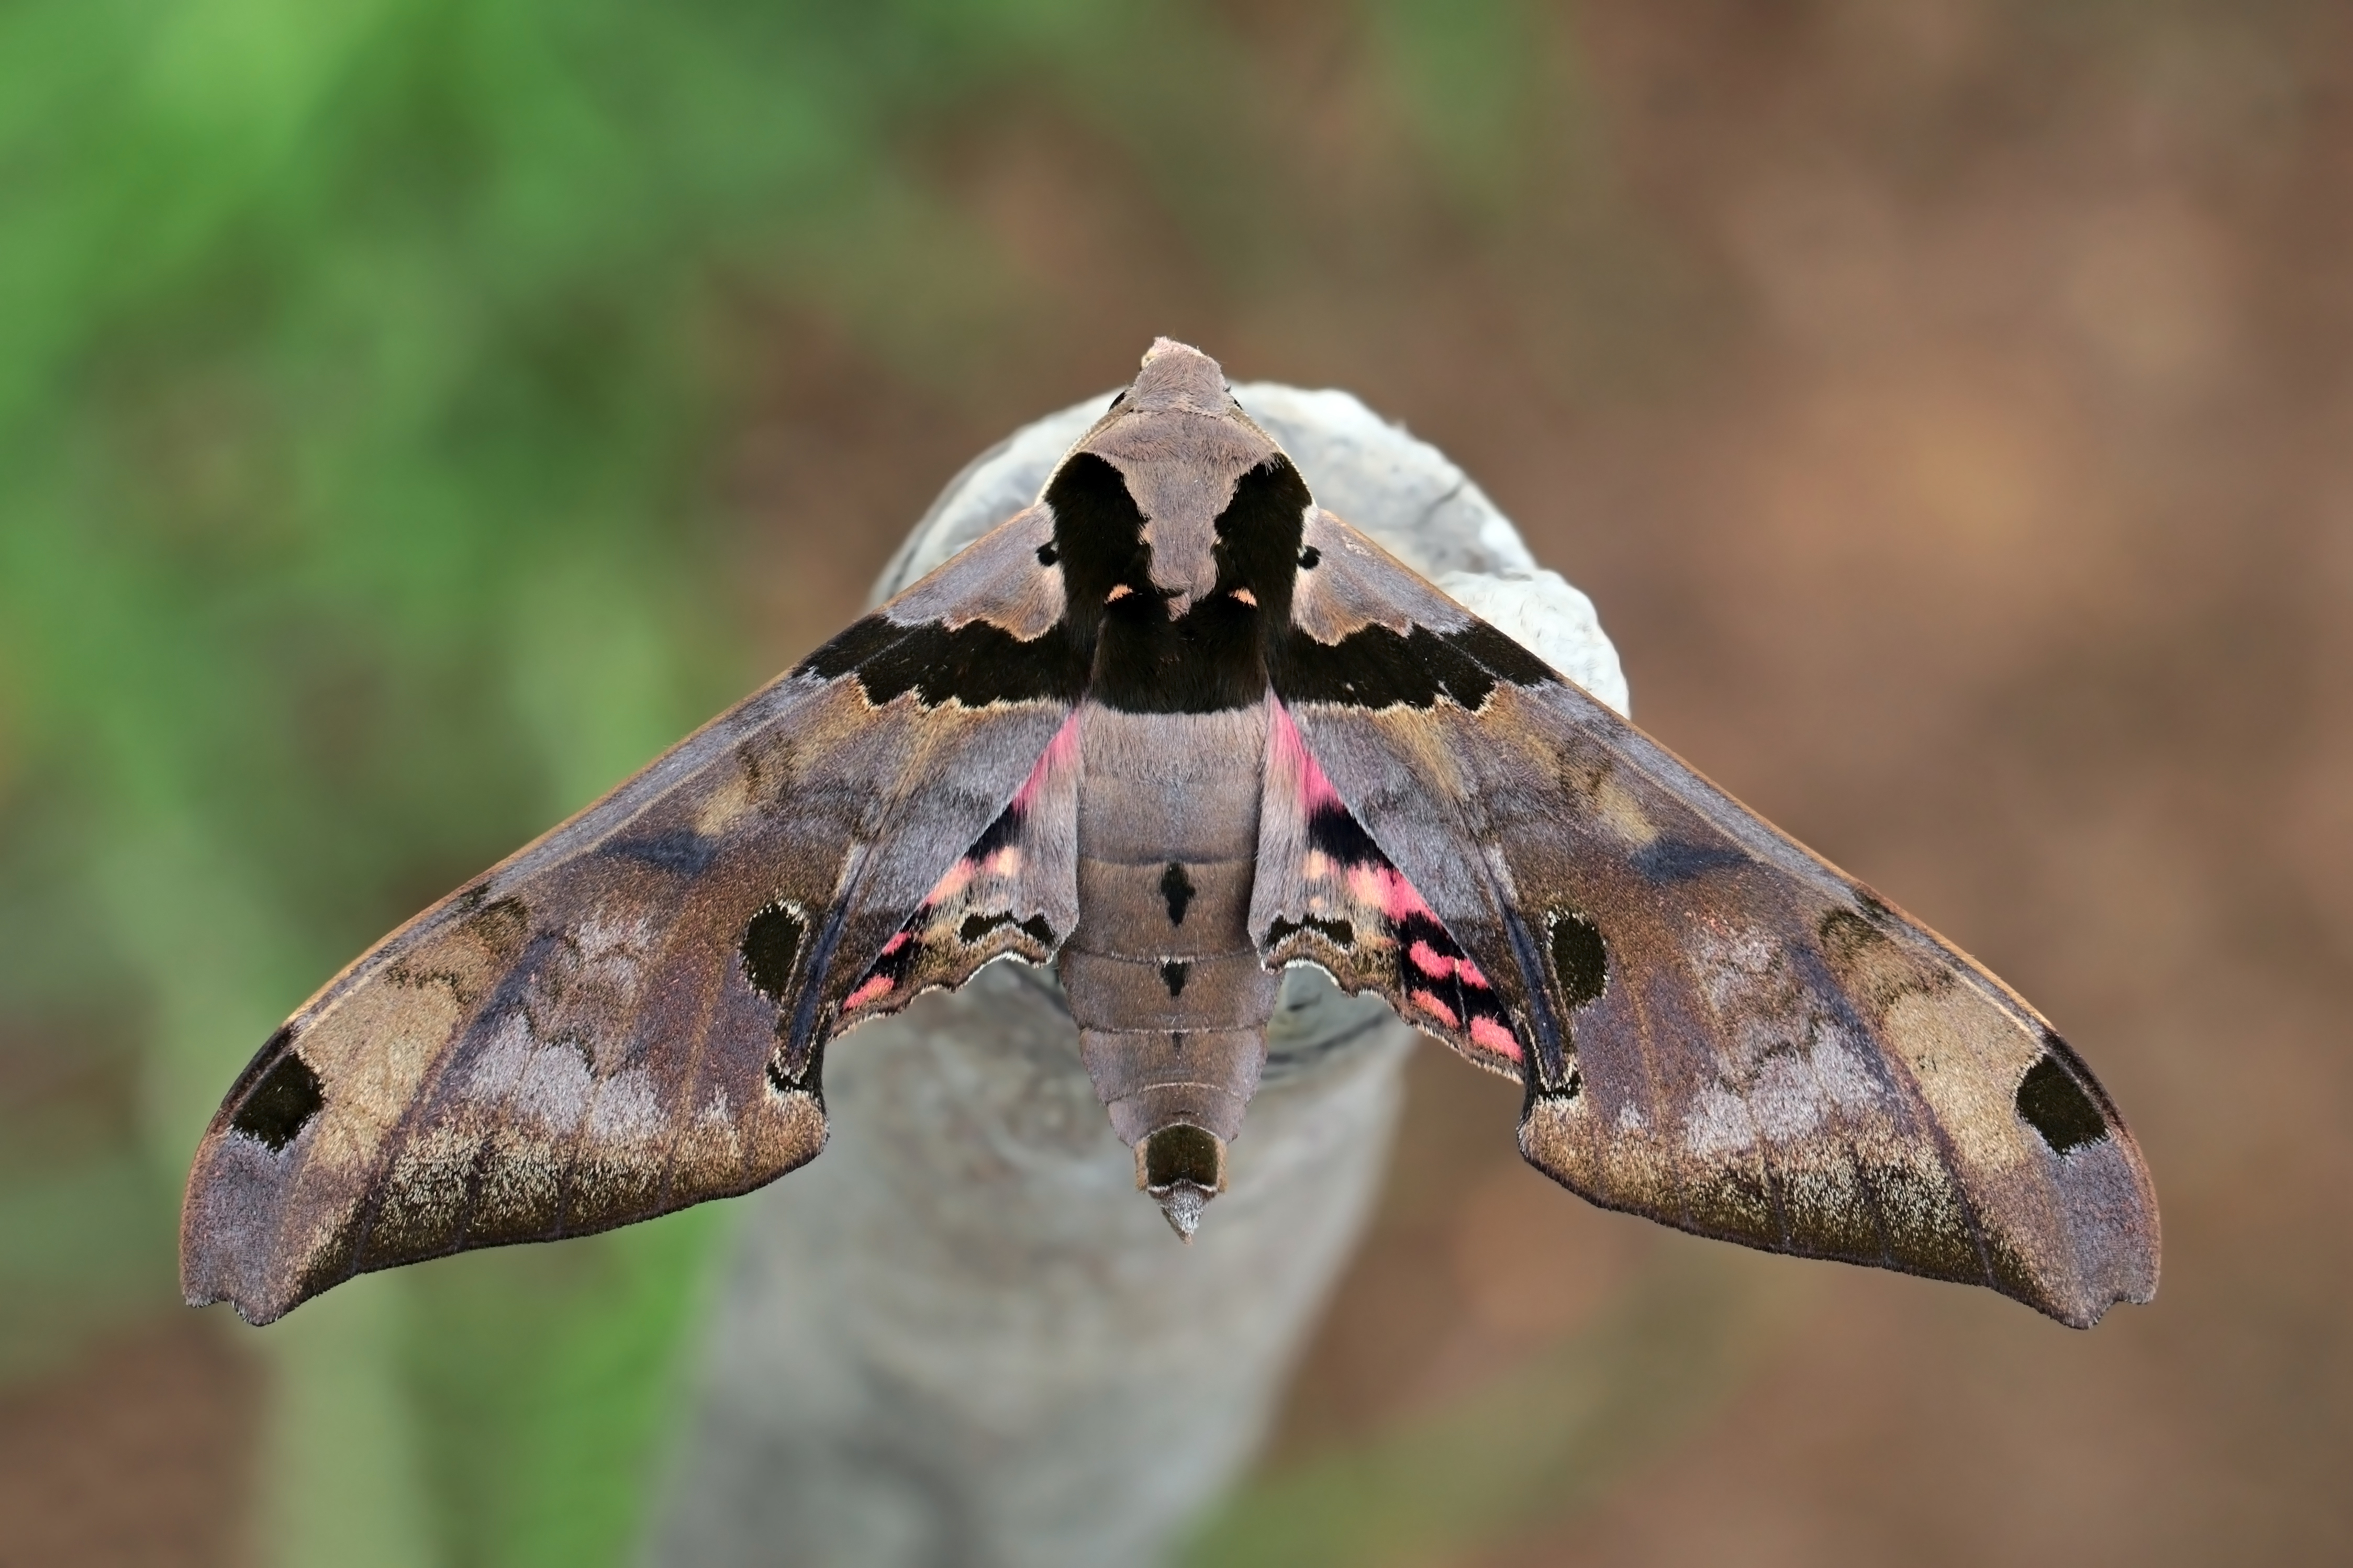 Moth with wings spread